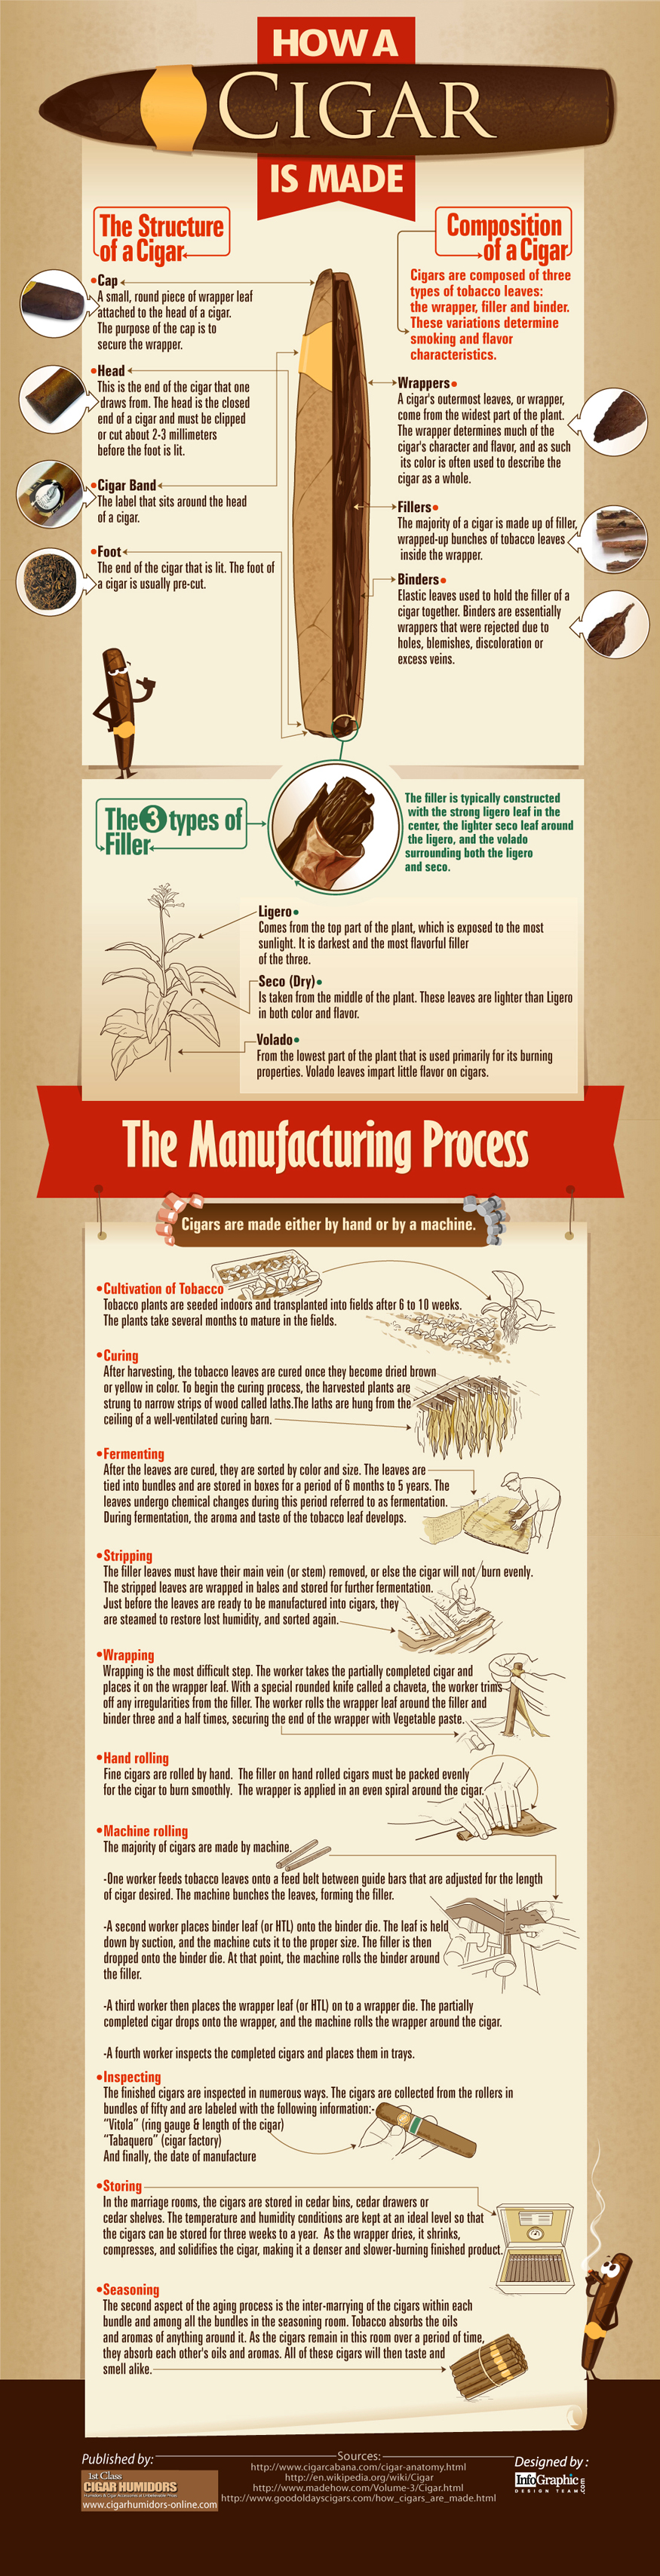 06 infographic-how-a-cigar-is-made